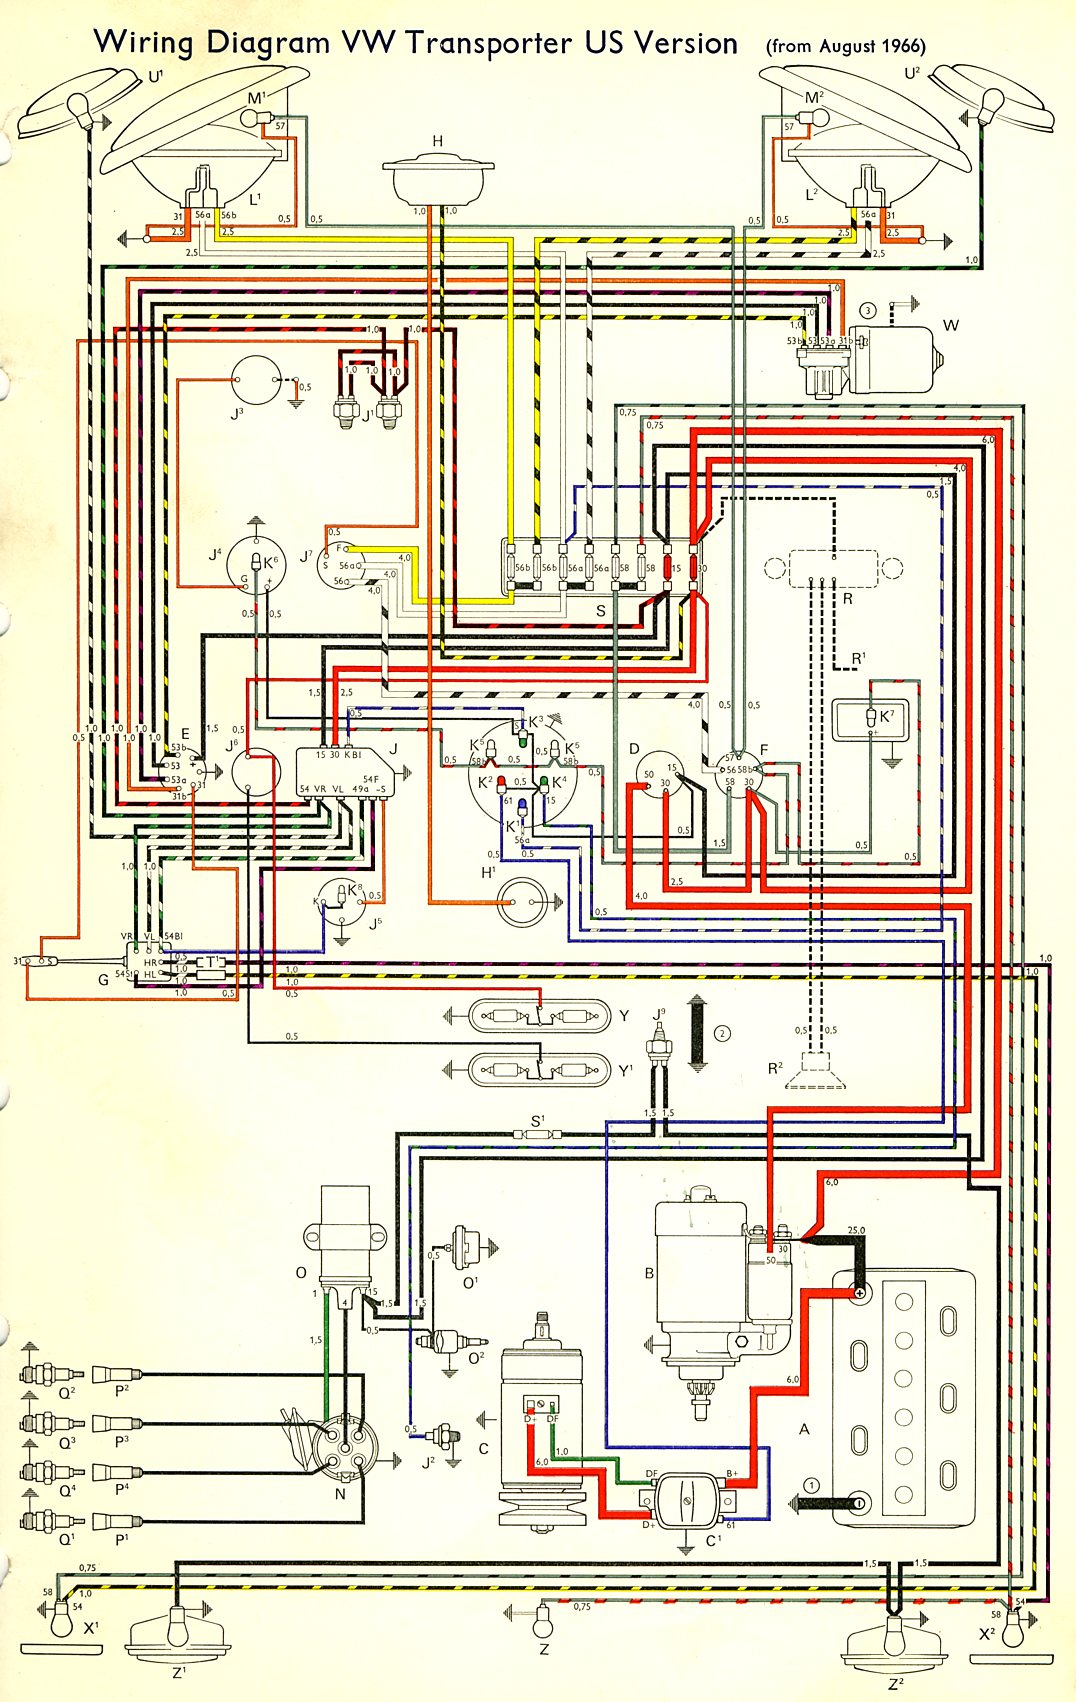 bus_67_USA 1967 bus wiring diagram (usa) thegoldenbug com 1971 vw bus wiring diagram at crackthecode.co